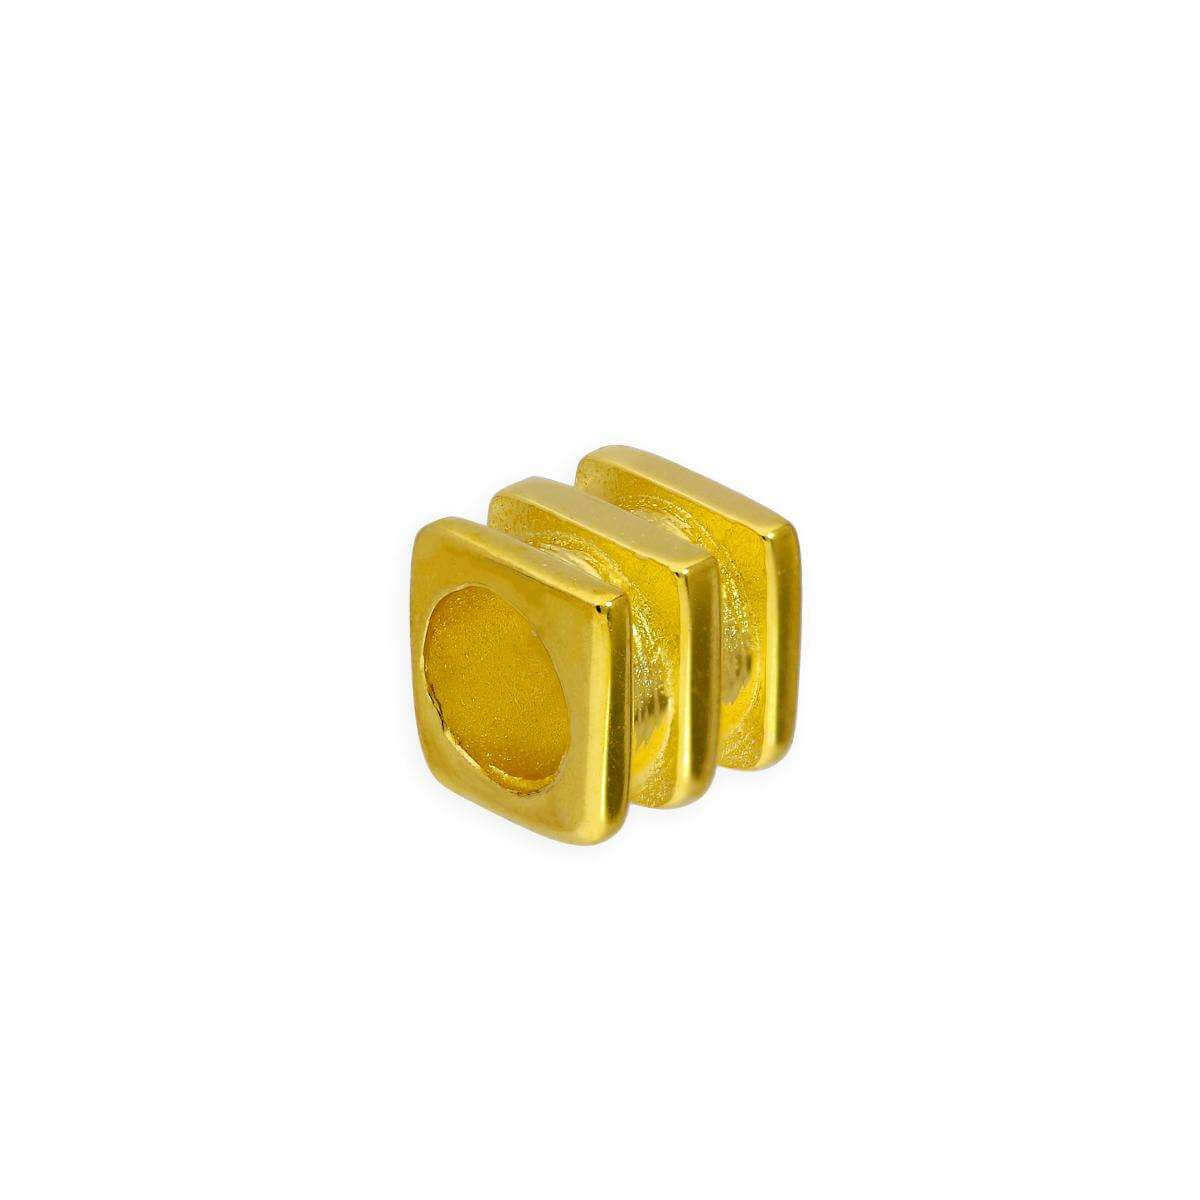 Gold Plated Sterling Silver 4mm 3 Ridged Square Ring Bead